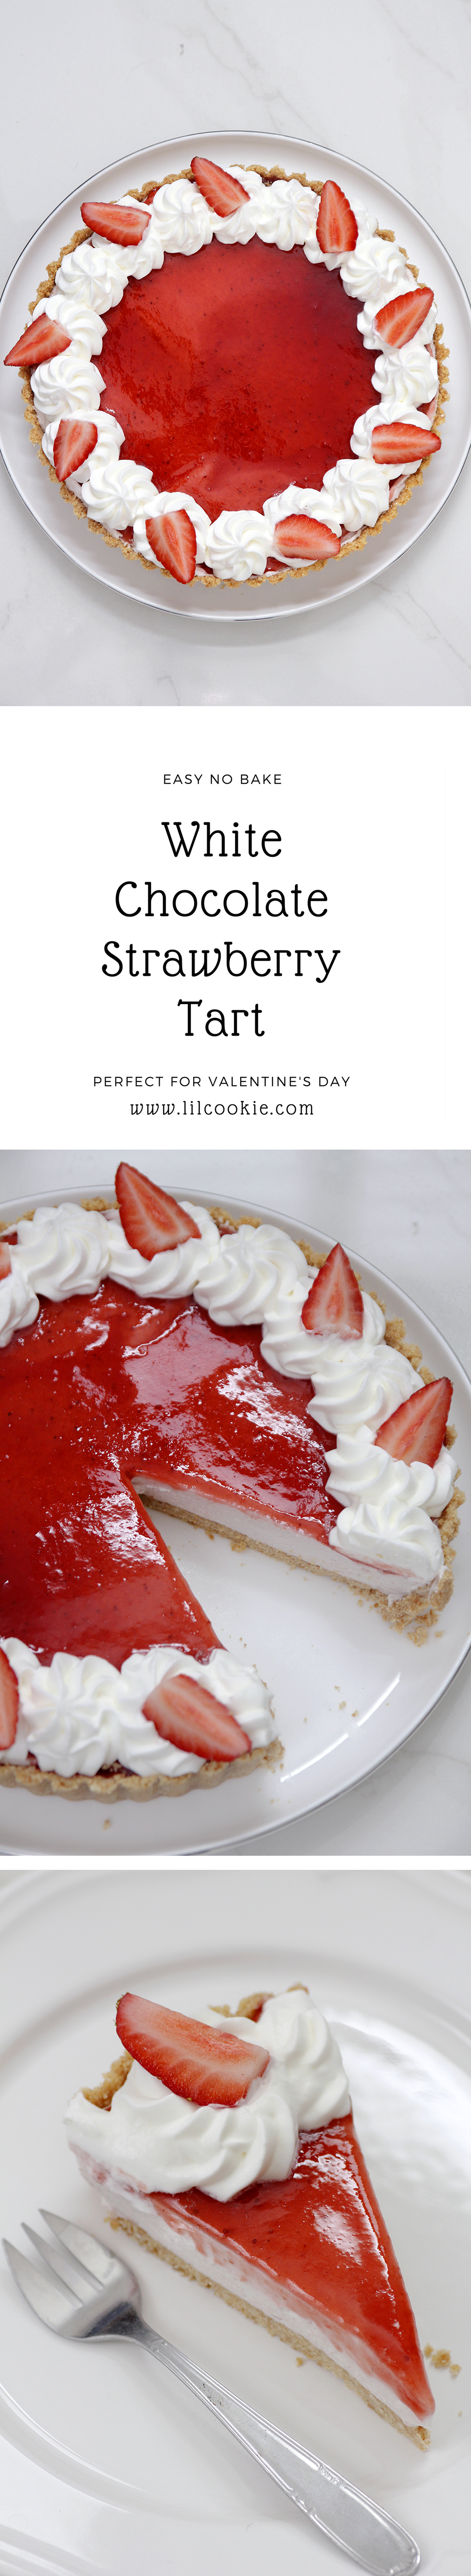 White Chocolate Strawberry Tart #strawberry #tart #pie #baking #recipe #whitechocolate #valentinesday #dessert #cake